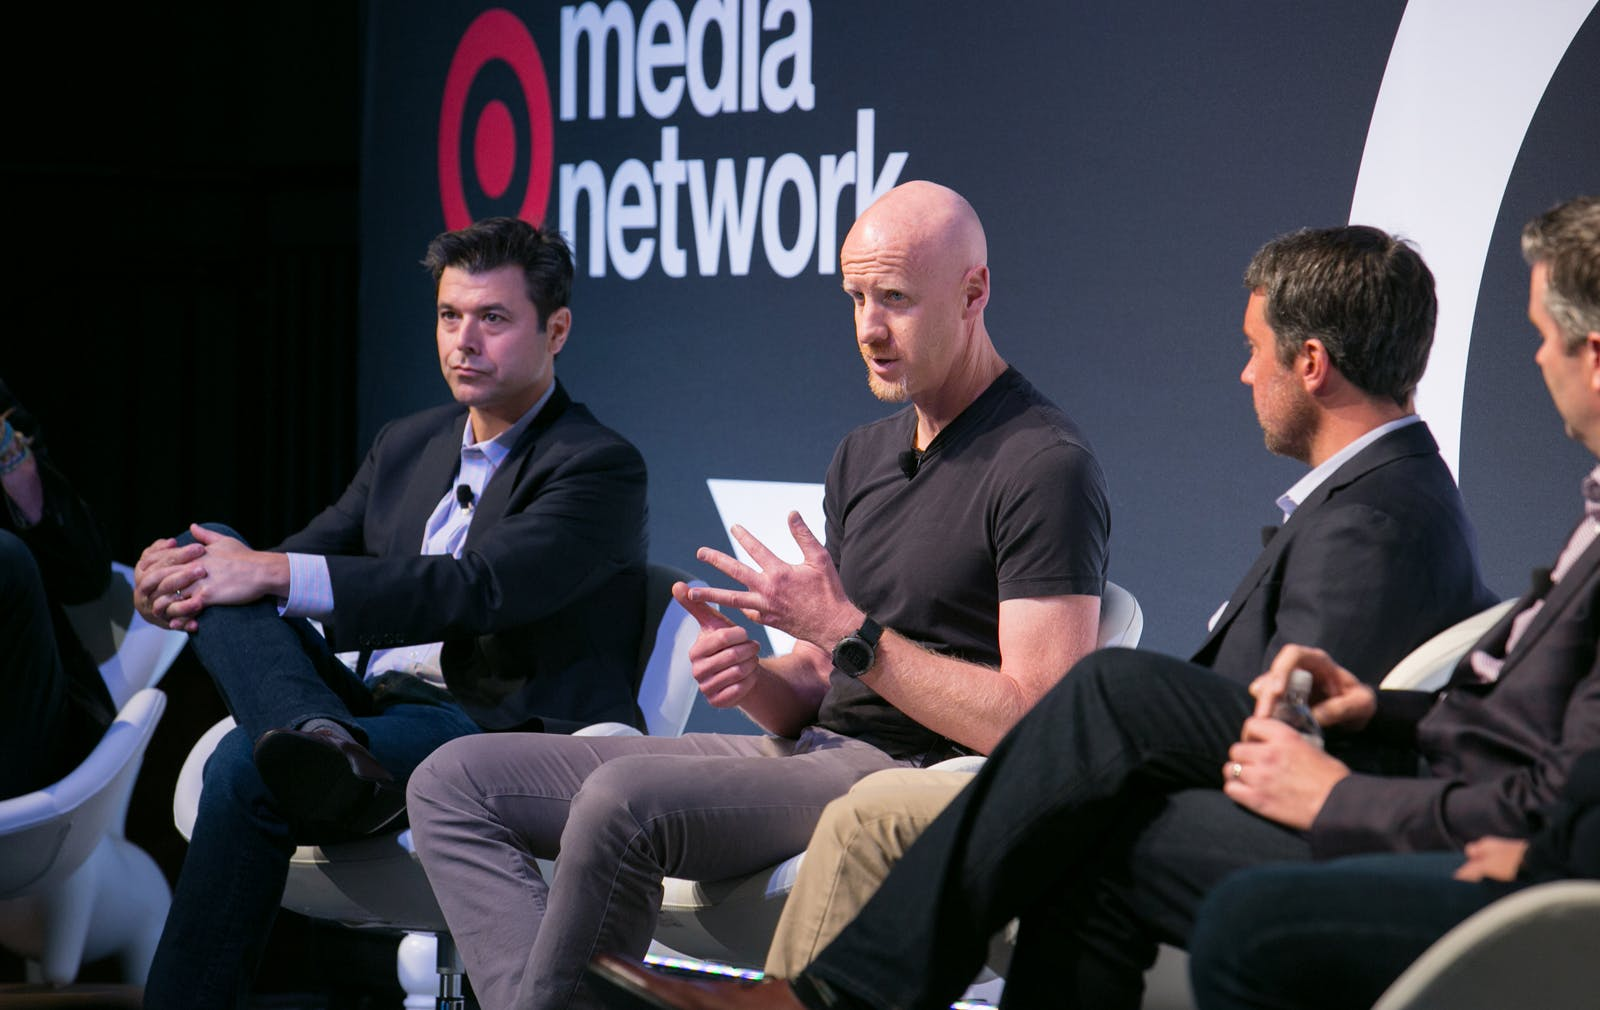 OX AdvertisingWeek Images12 - AdWeek New York 2017: What's Next for Ad Tech and Programmatic?